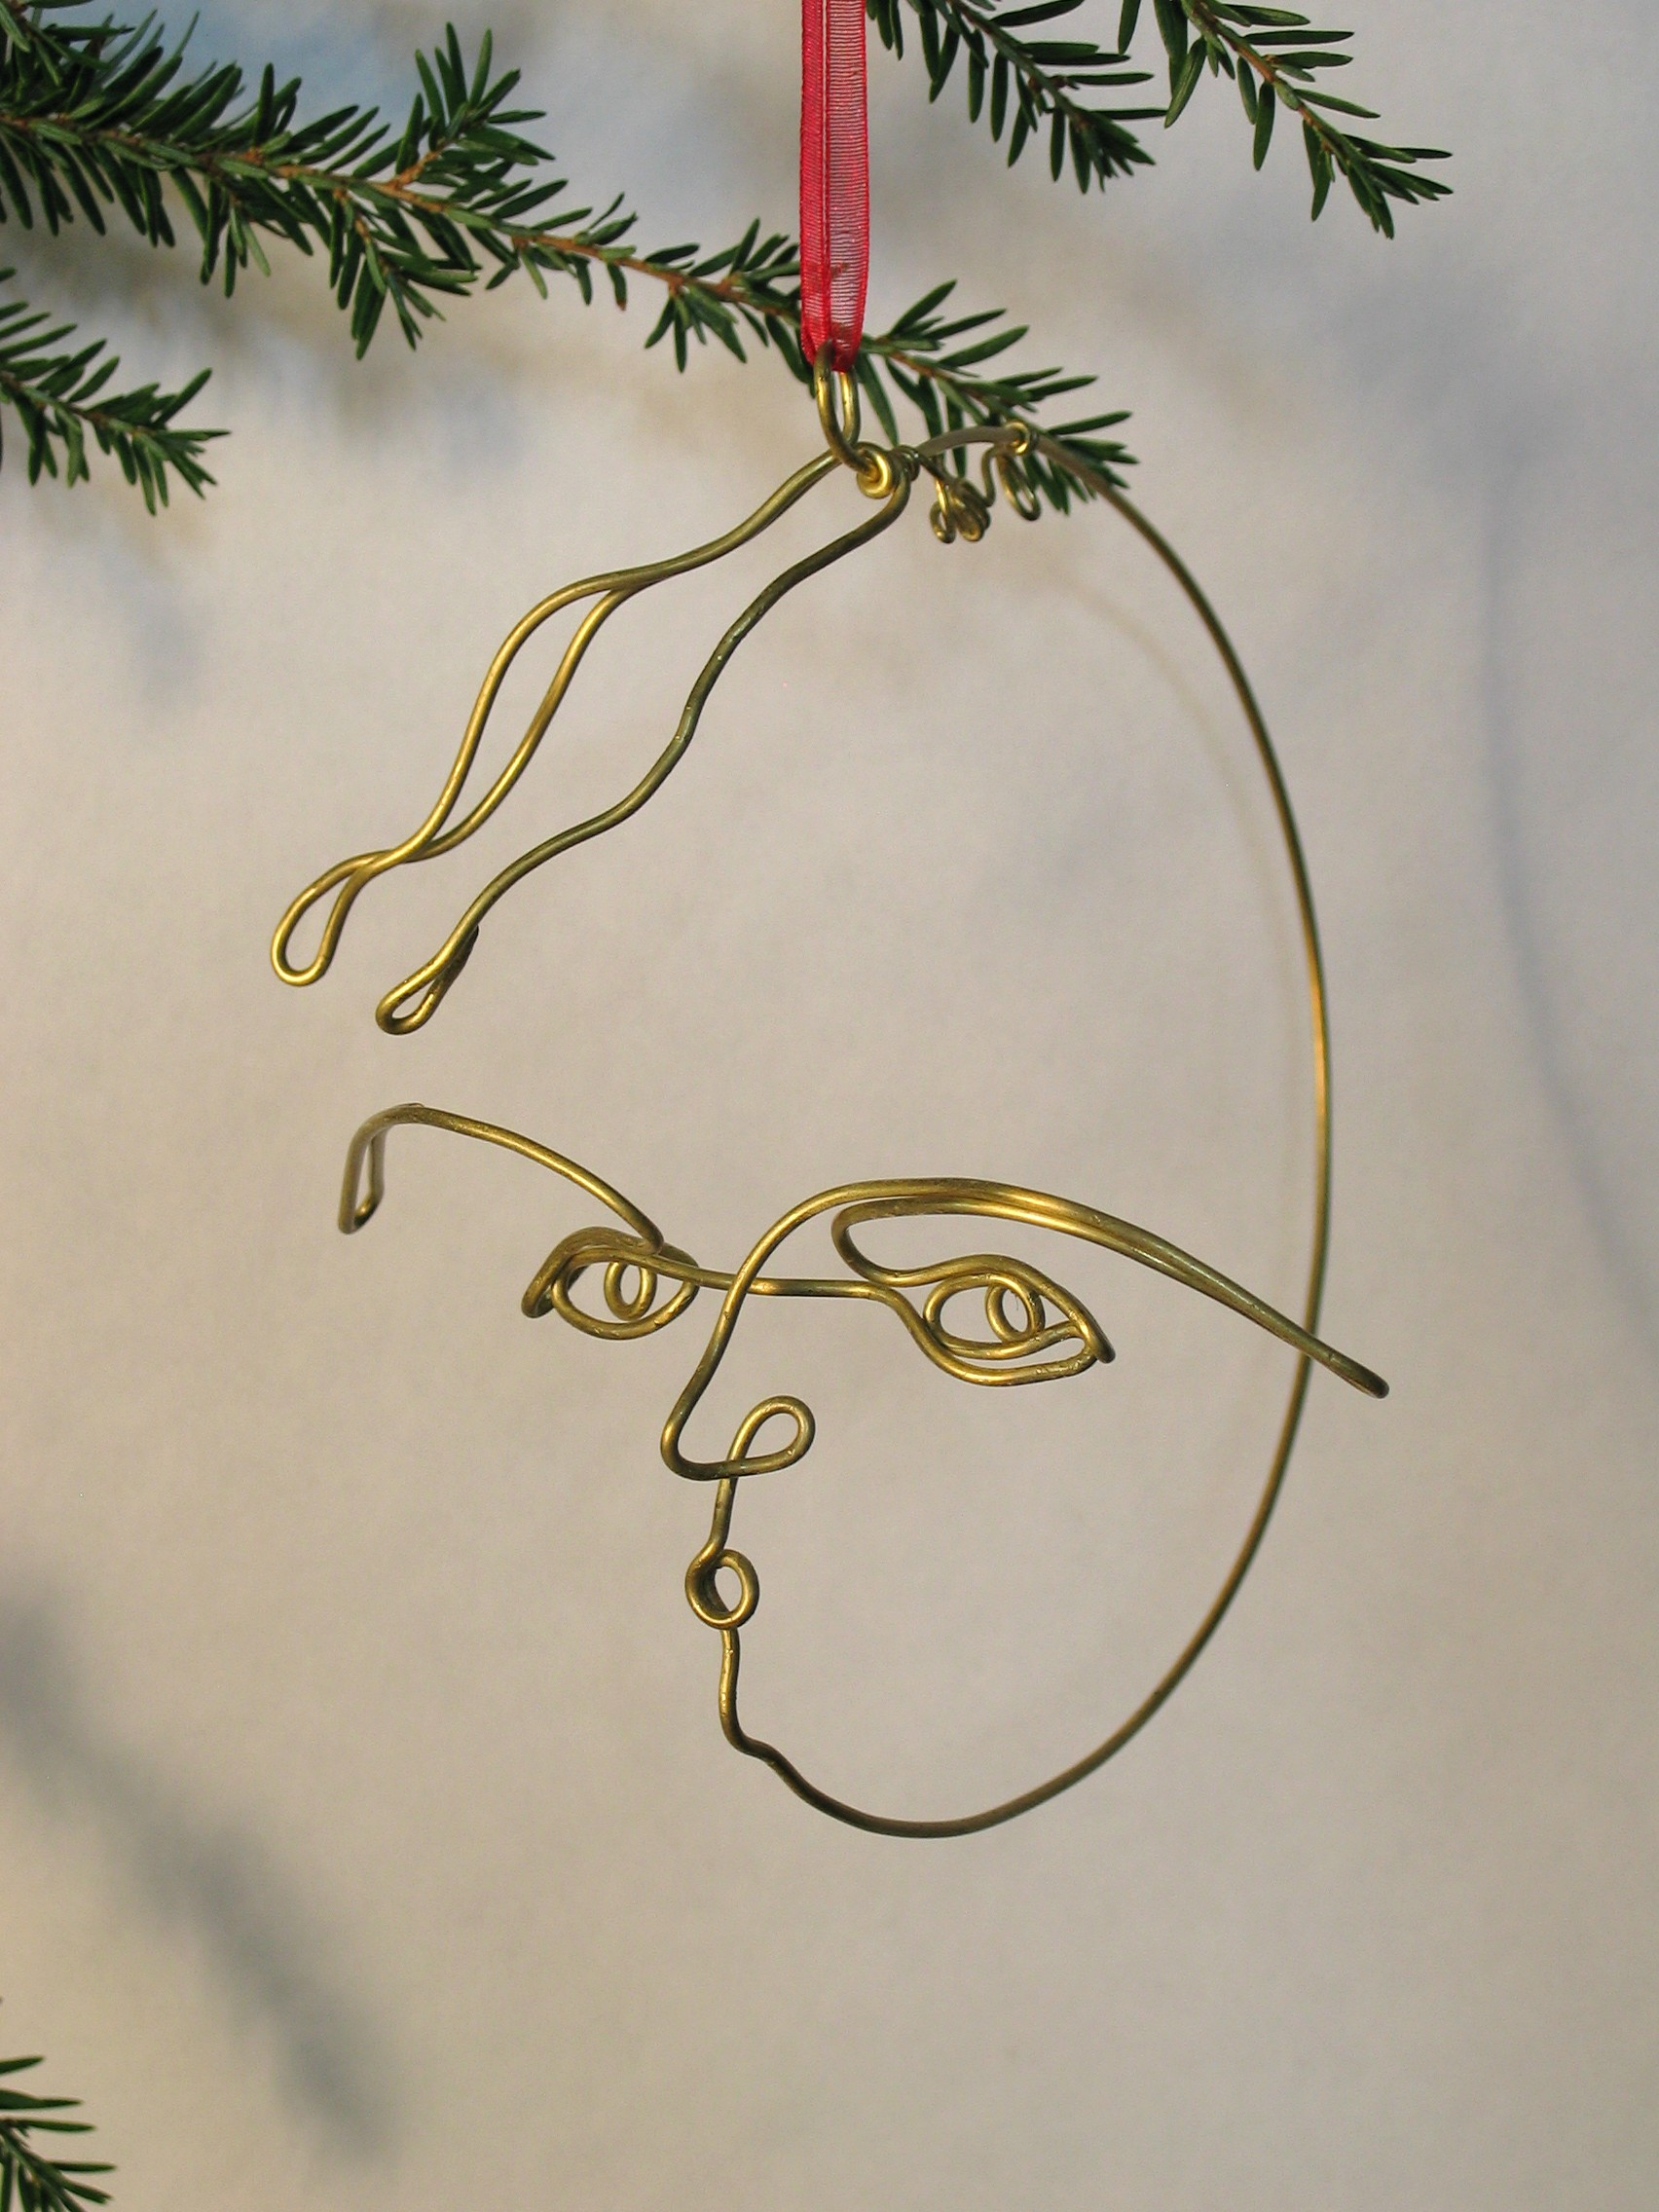 Wire sculpture Man in the Moon Christmas ornament